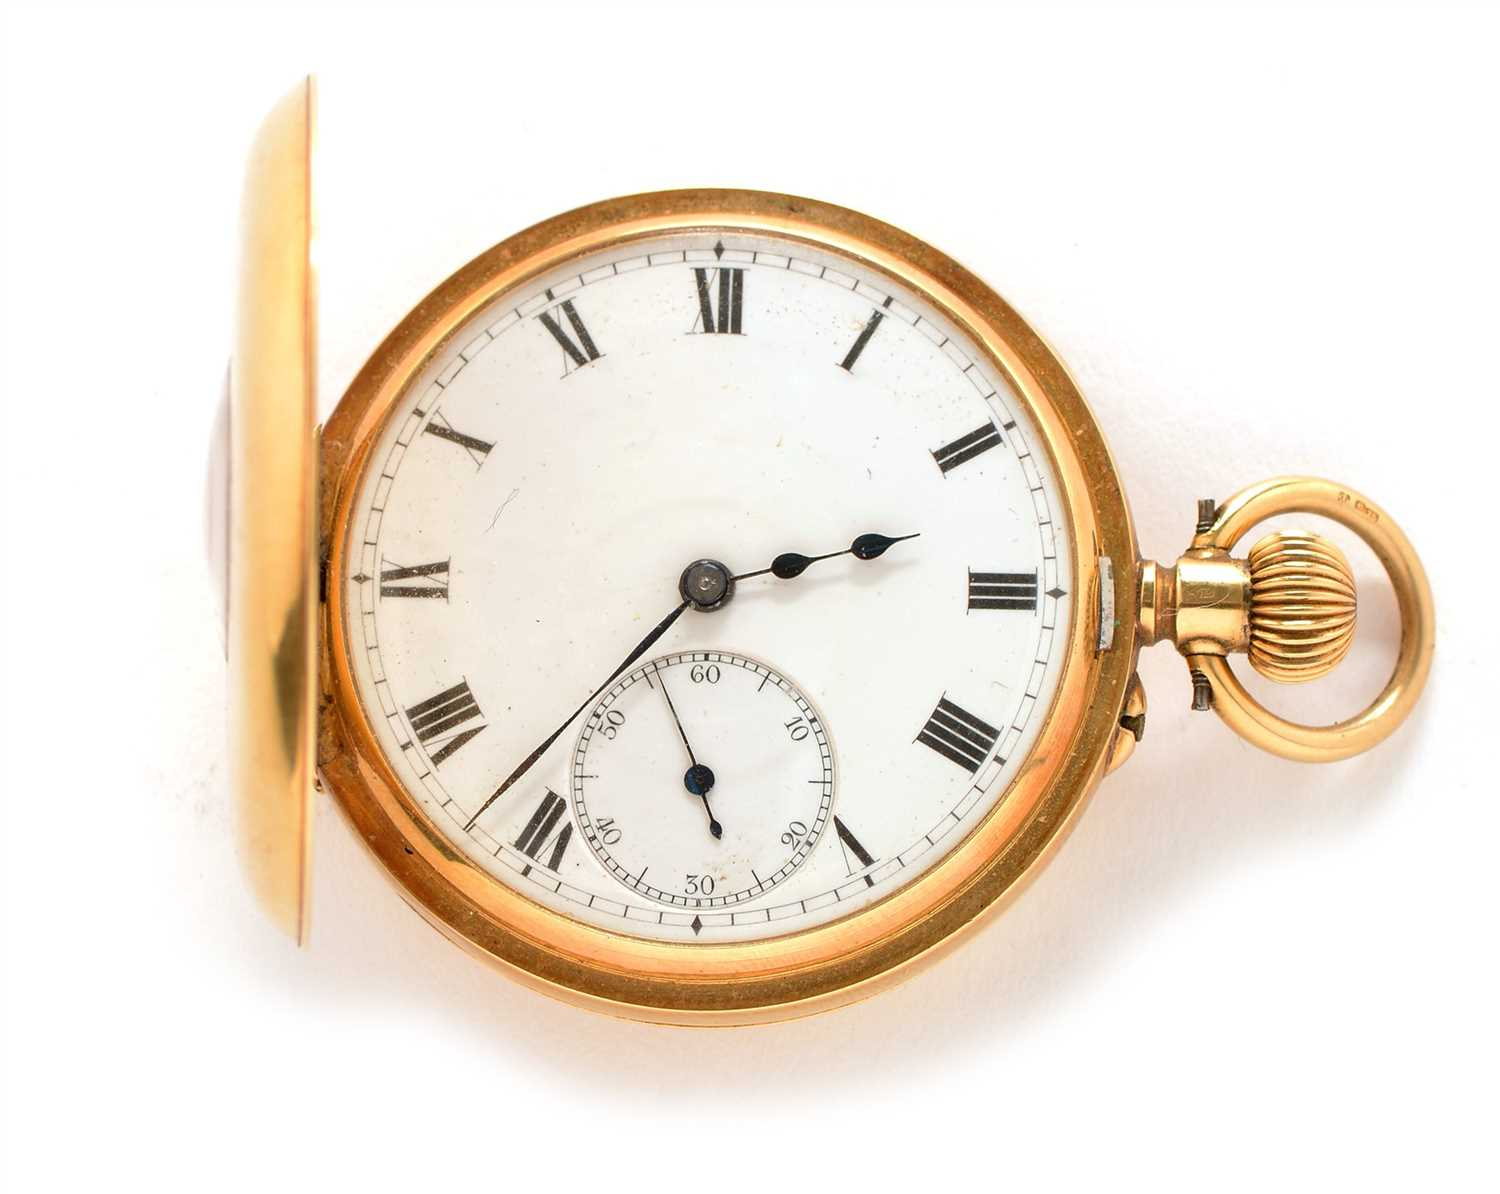 Lot 7-An 18ct. gold half hunter crown wind pocket watch.